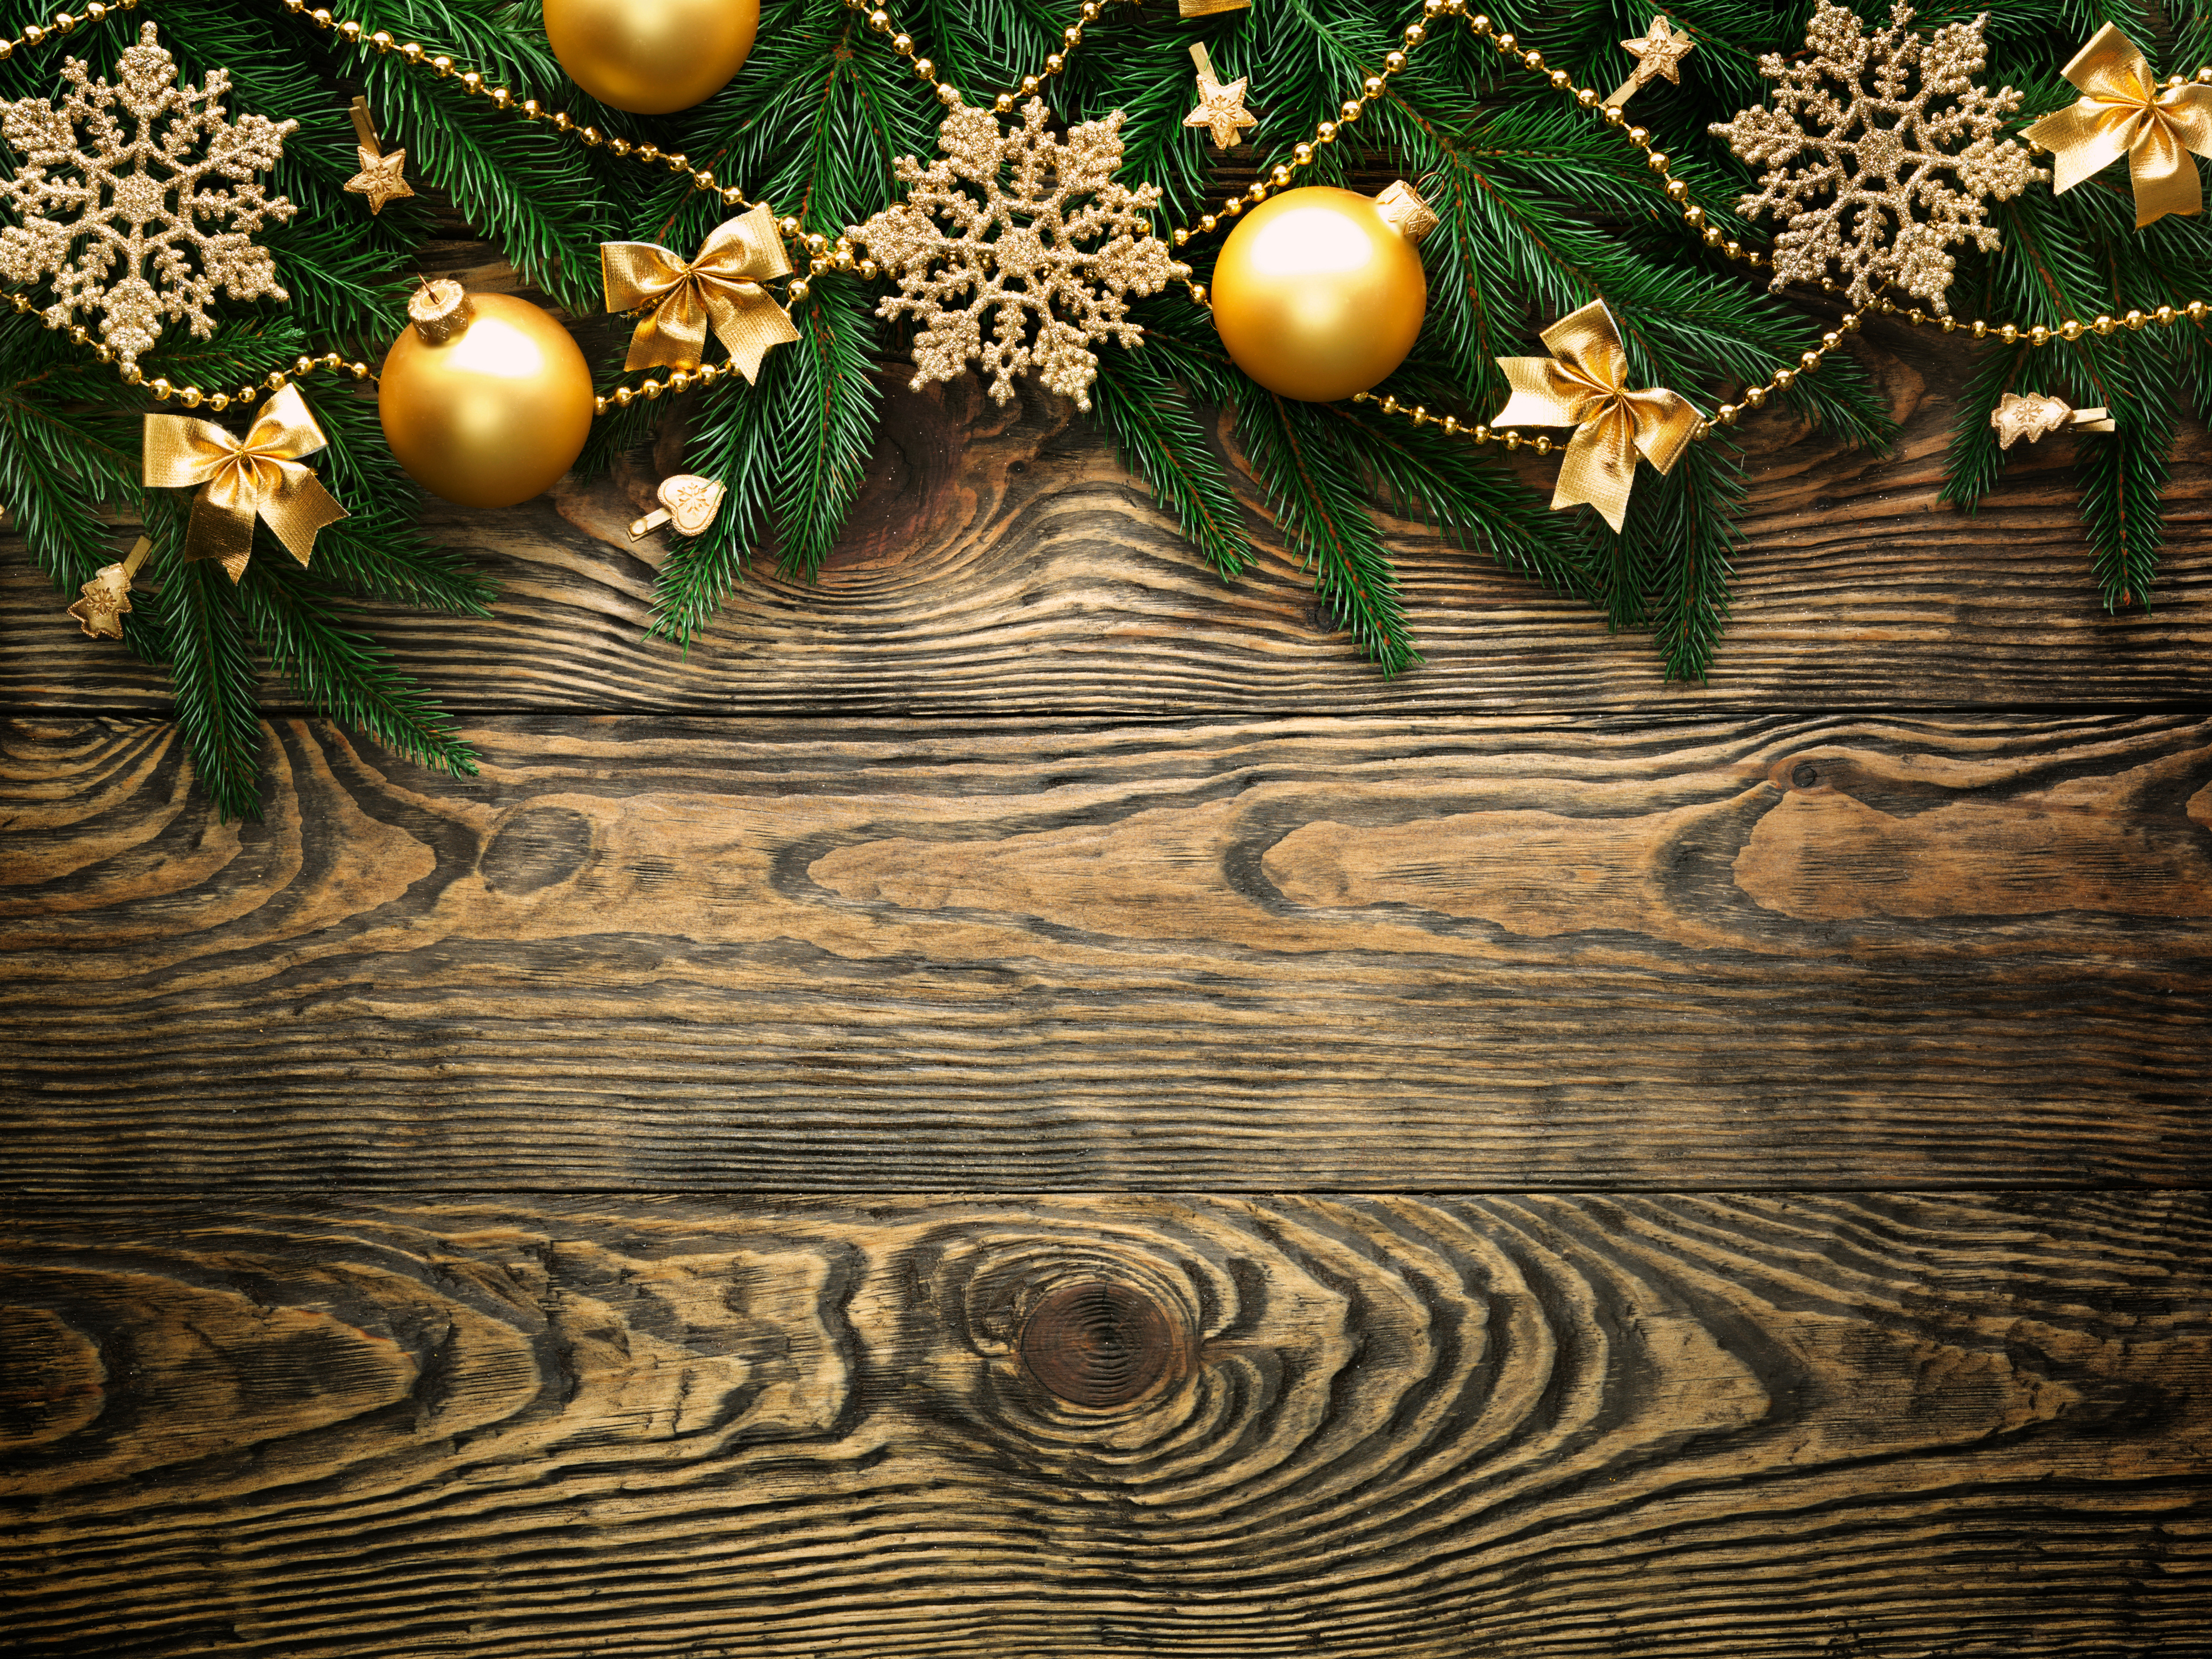 Wood christmaas clipart graphic free library Wooden Christmas Background with Gold Ornaments | Gallery ... graphic free library